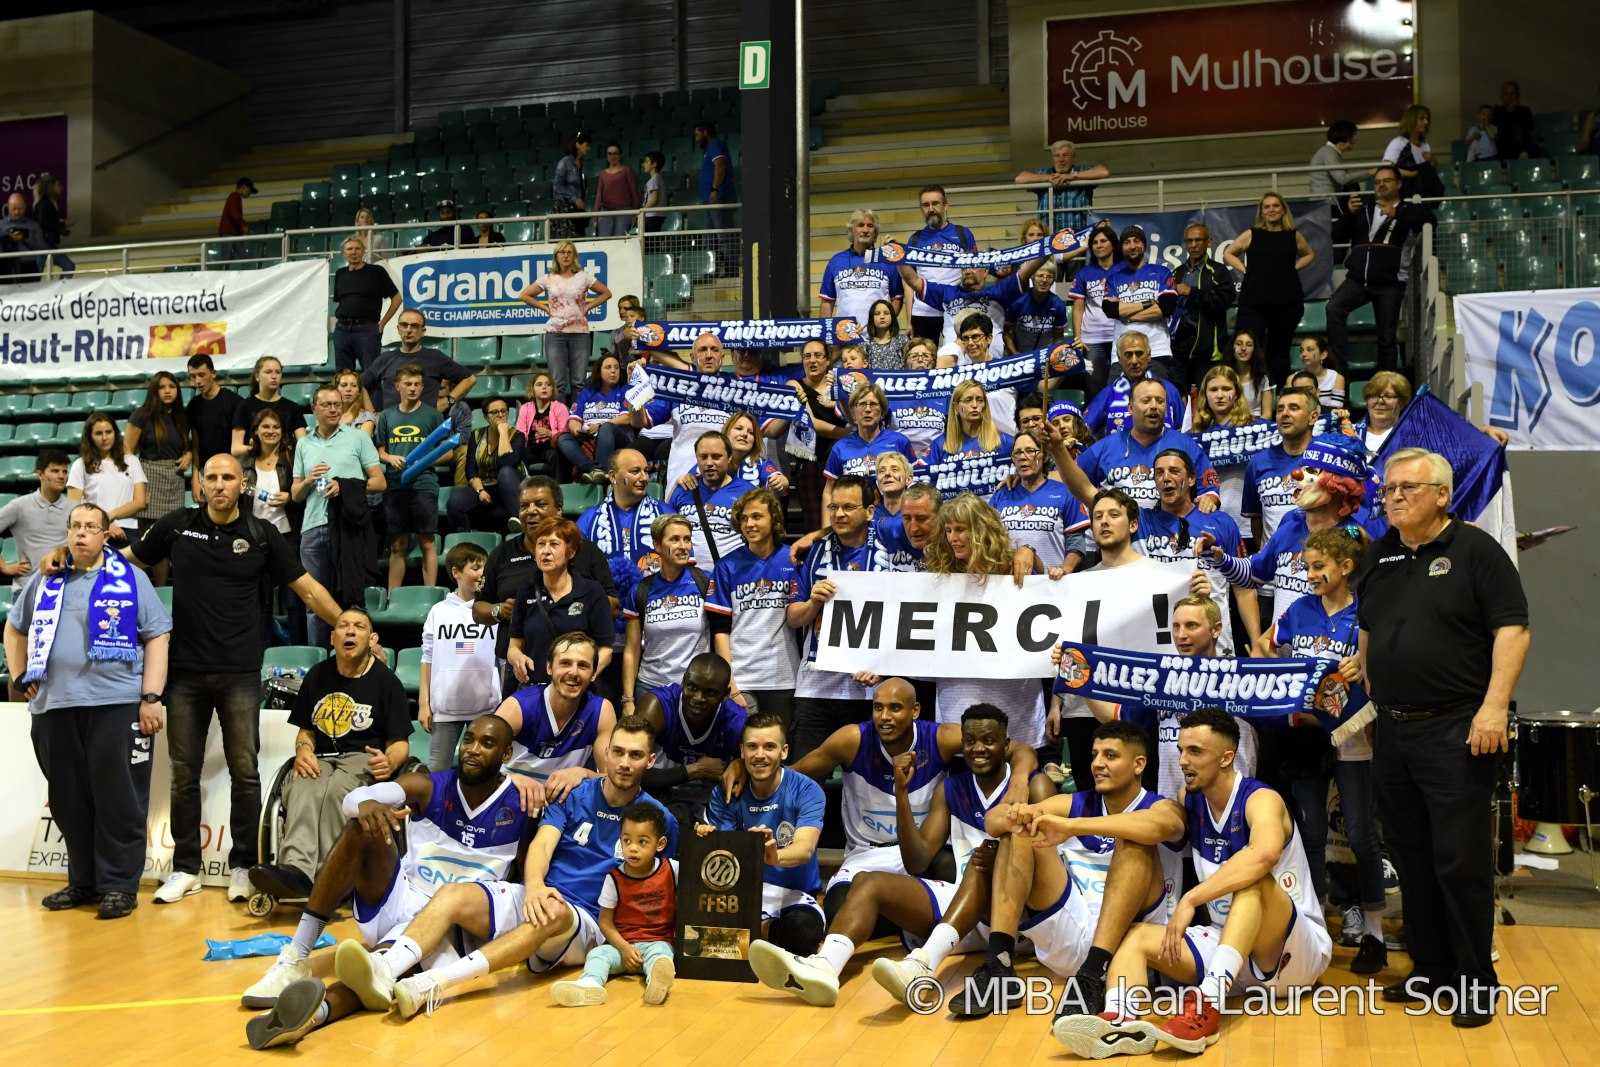 [J.09] Cergy-Pontoise Basket-Ball - FC MULHOUSE  : 65 - 62 - Page 11 Merci